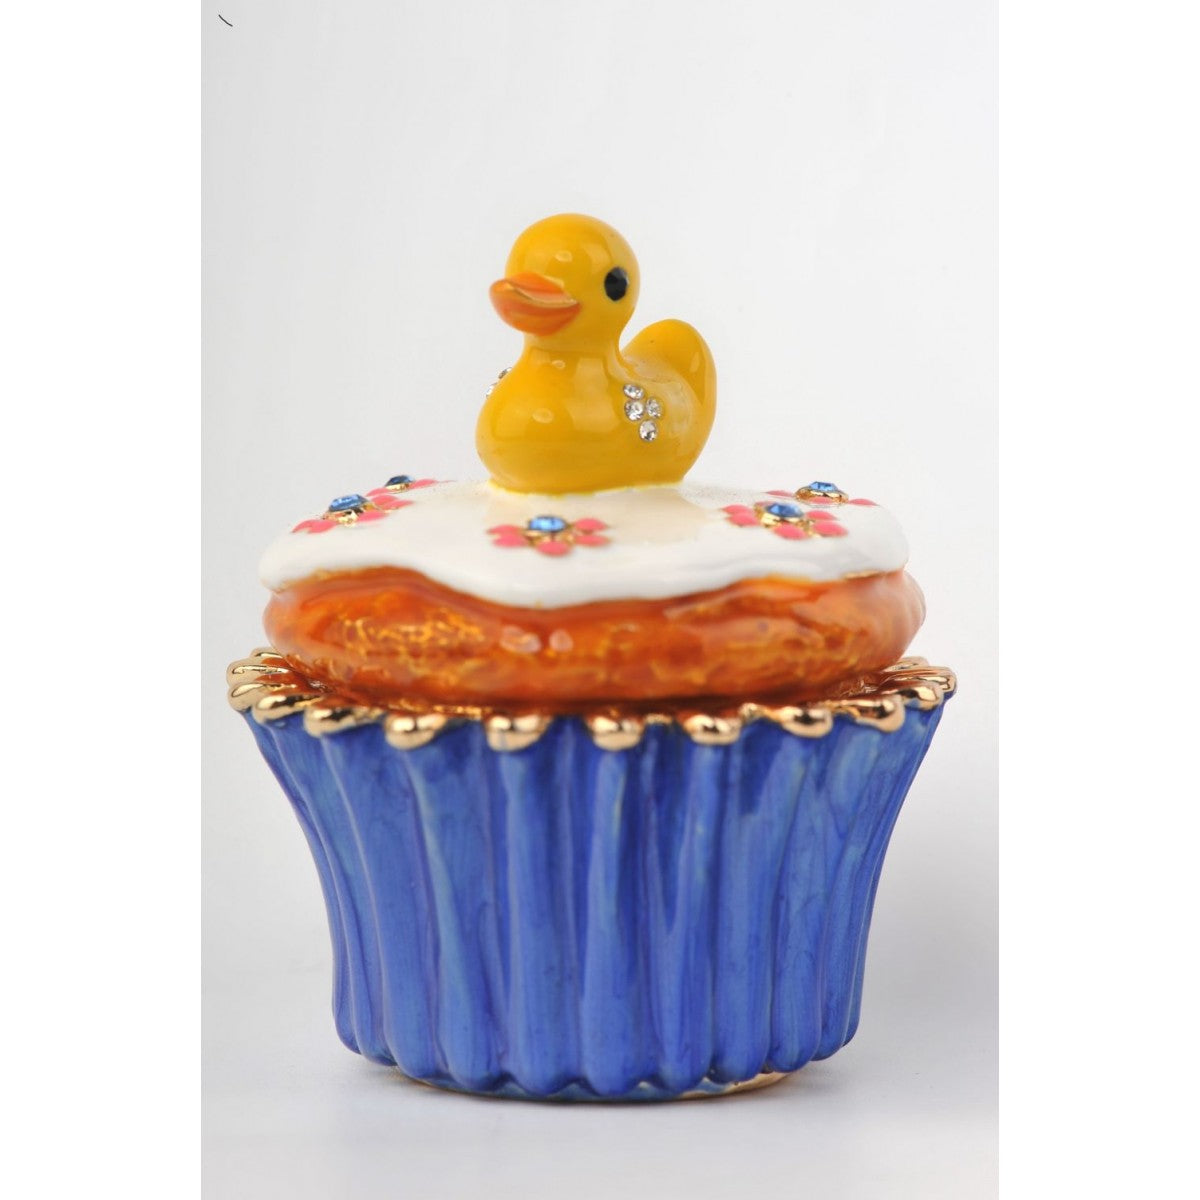 Yellow Duck on Blue Cupcake by Keren Kopal